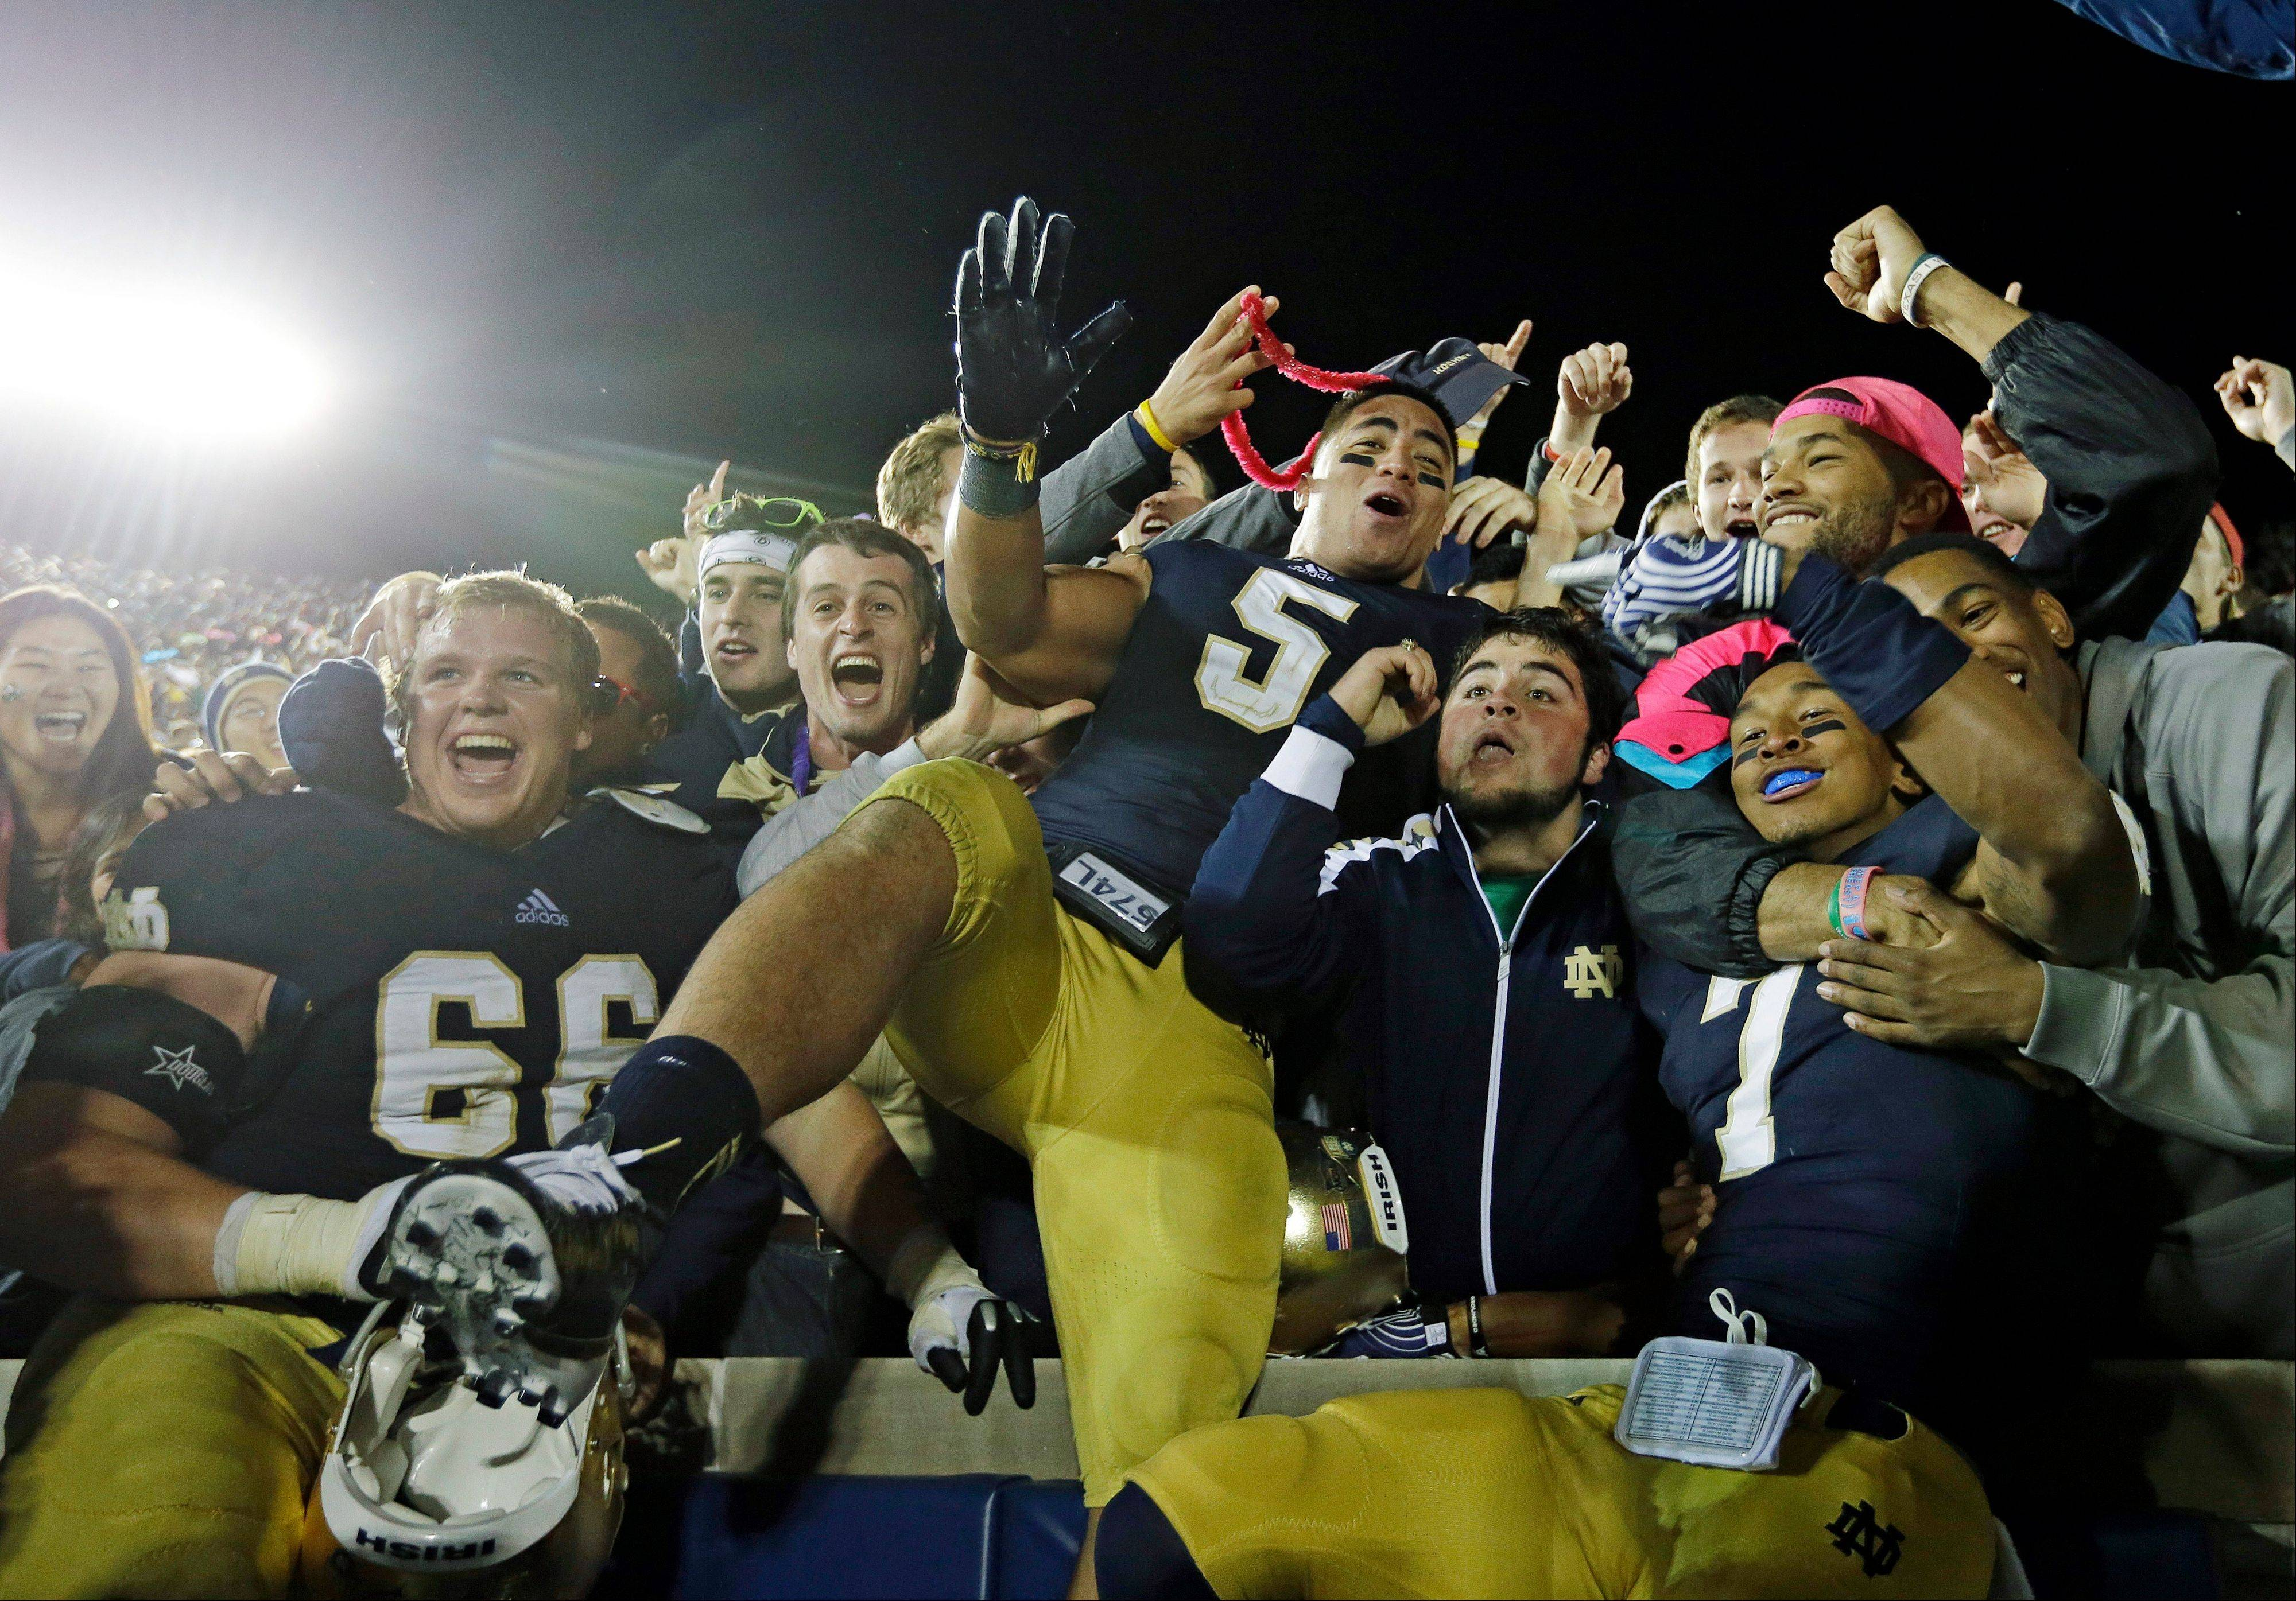 Notre Dame's Chris Watt (66), Manti Te'o (5) and TJ Jones (7) celebrate with fans after Notre Dame defeated Michigan, 13-6 in South Bend, Ind. Notre Dame defensive coordinator Bob Diaco believes Manti Teío is the finest football player in college.